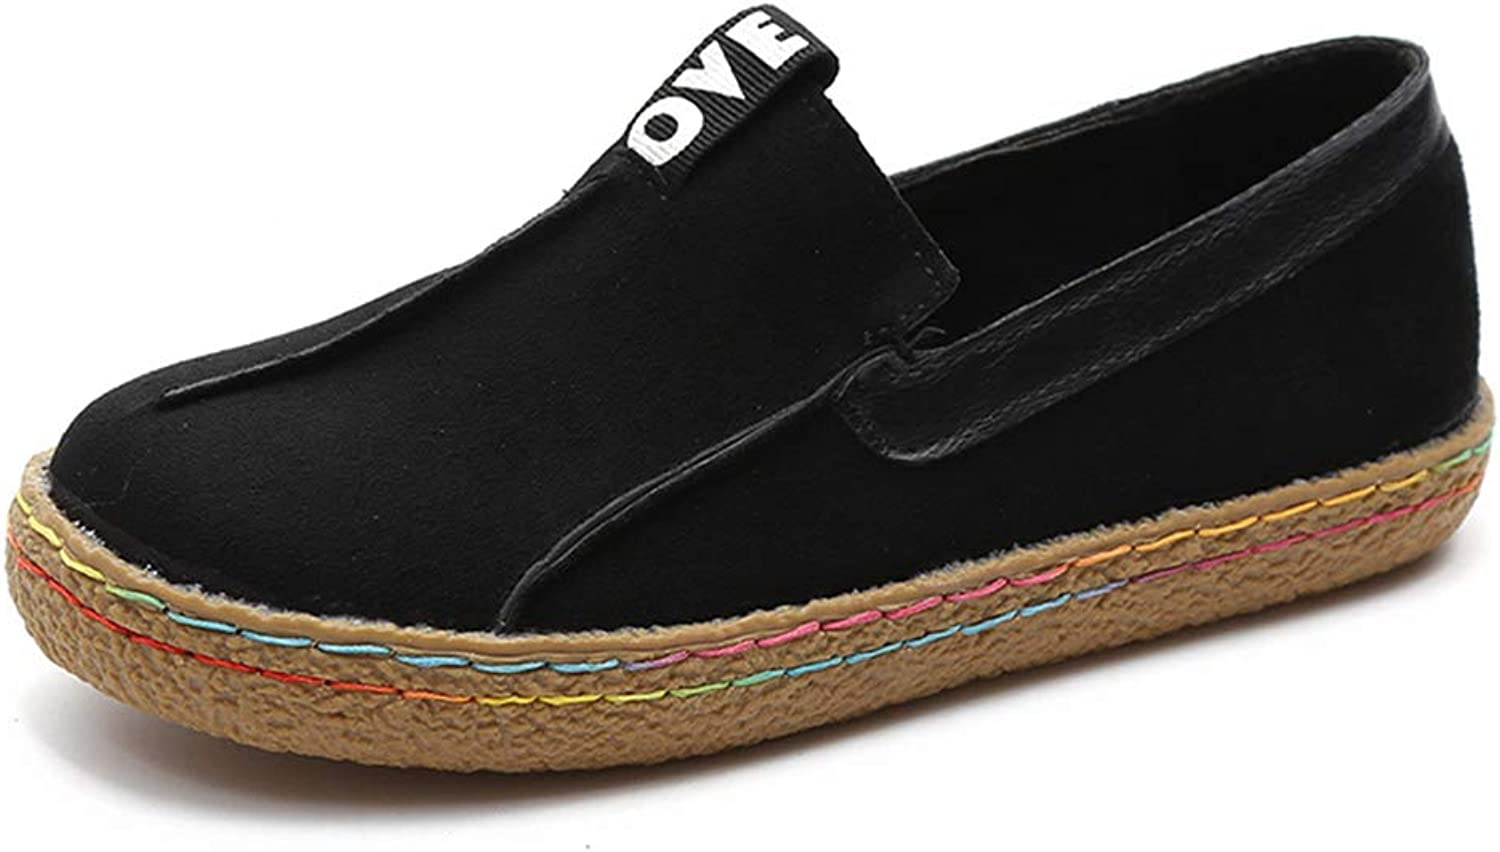 JOYBI Women Fashion Flat Loafers Slip-On Faux Suede Soft Comfortable Ladies Round Toe Casual Boat shoes